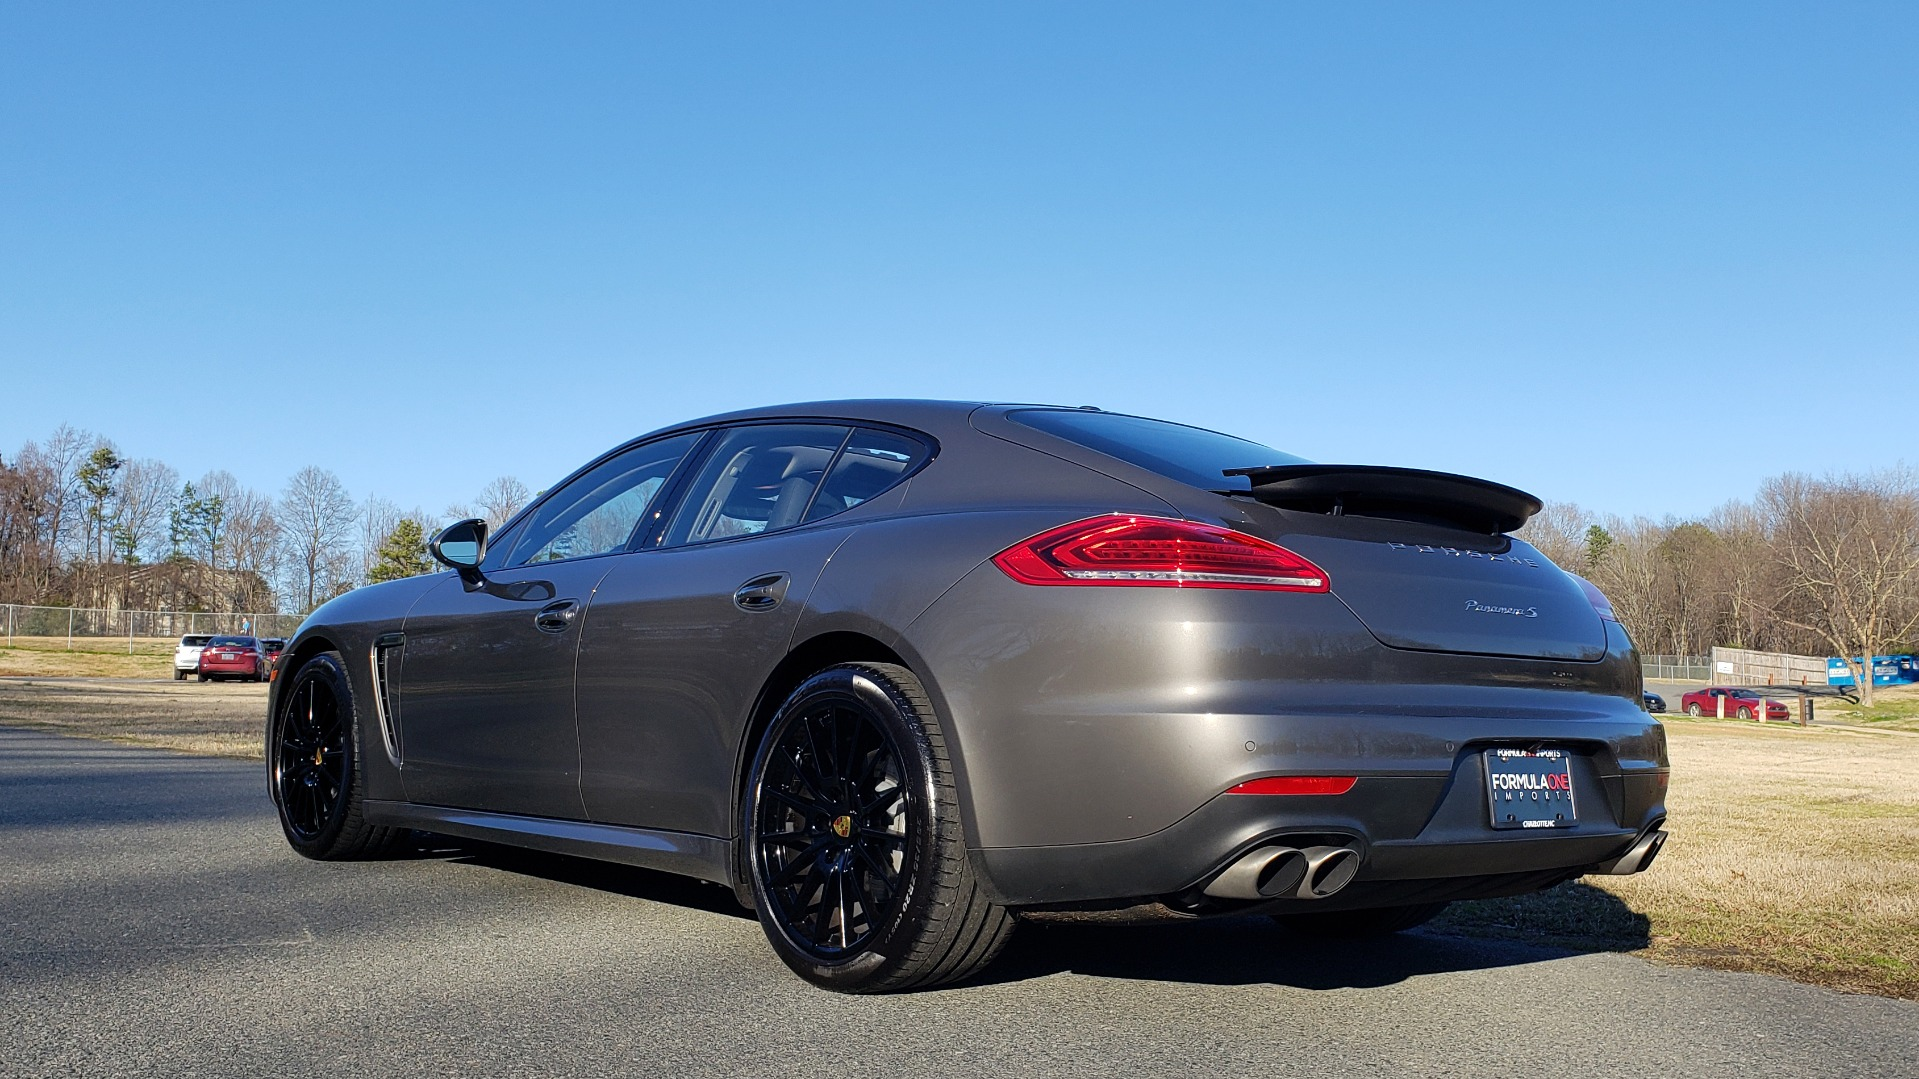 Used 2016 Porsche PANAMERA S / TURBO V6 / PDK / NAV / BOSE / SNRF / LDW / REARVIEW for sale Sold at Formula Imports in Charlotte NC 28227 33